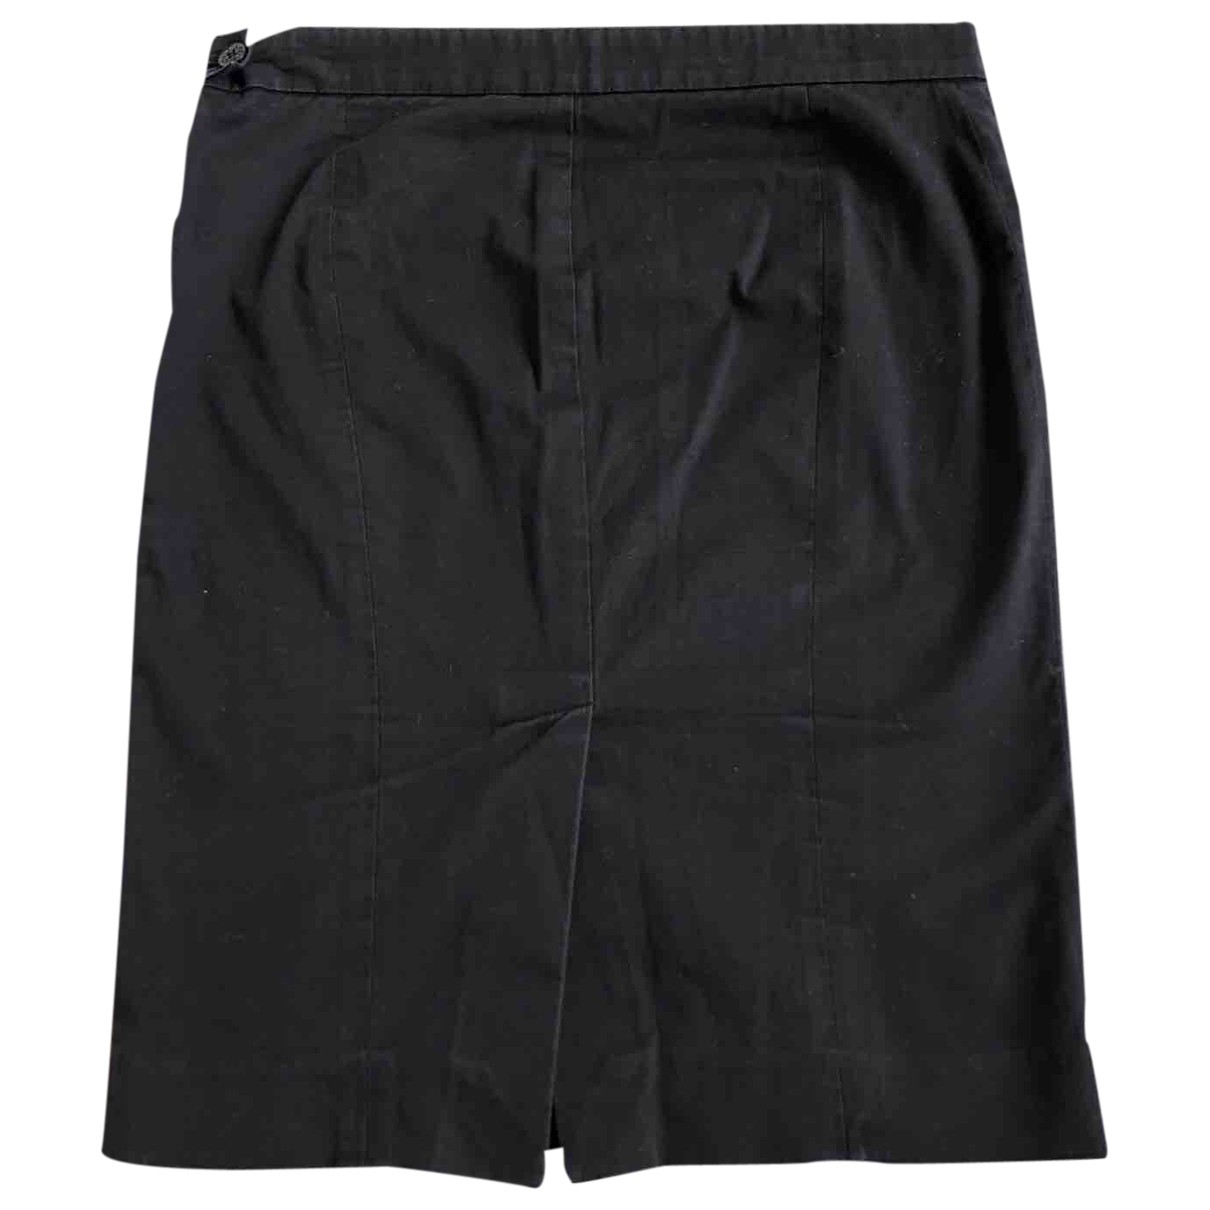 Patrizia Pepe \N Black Cotton - elasthane skirt for Women S International